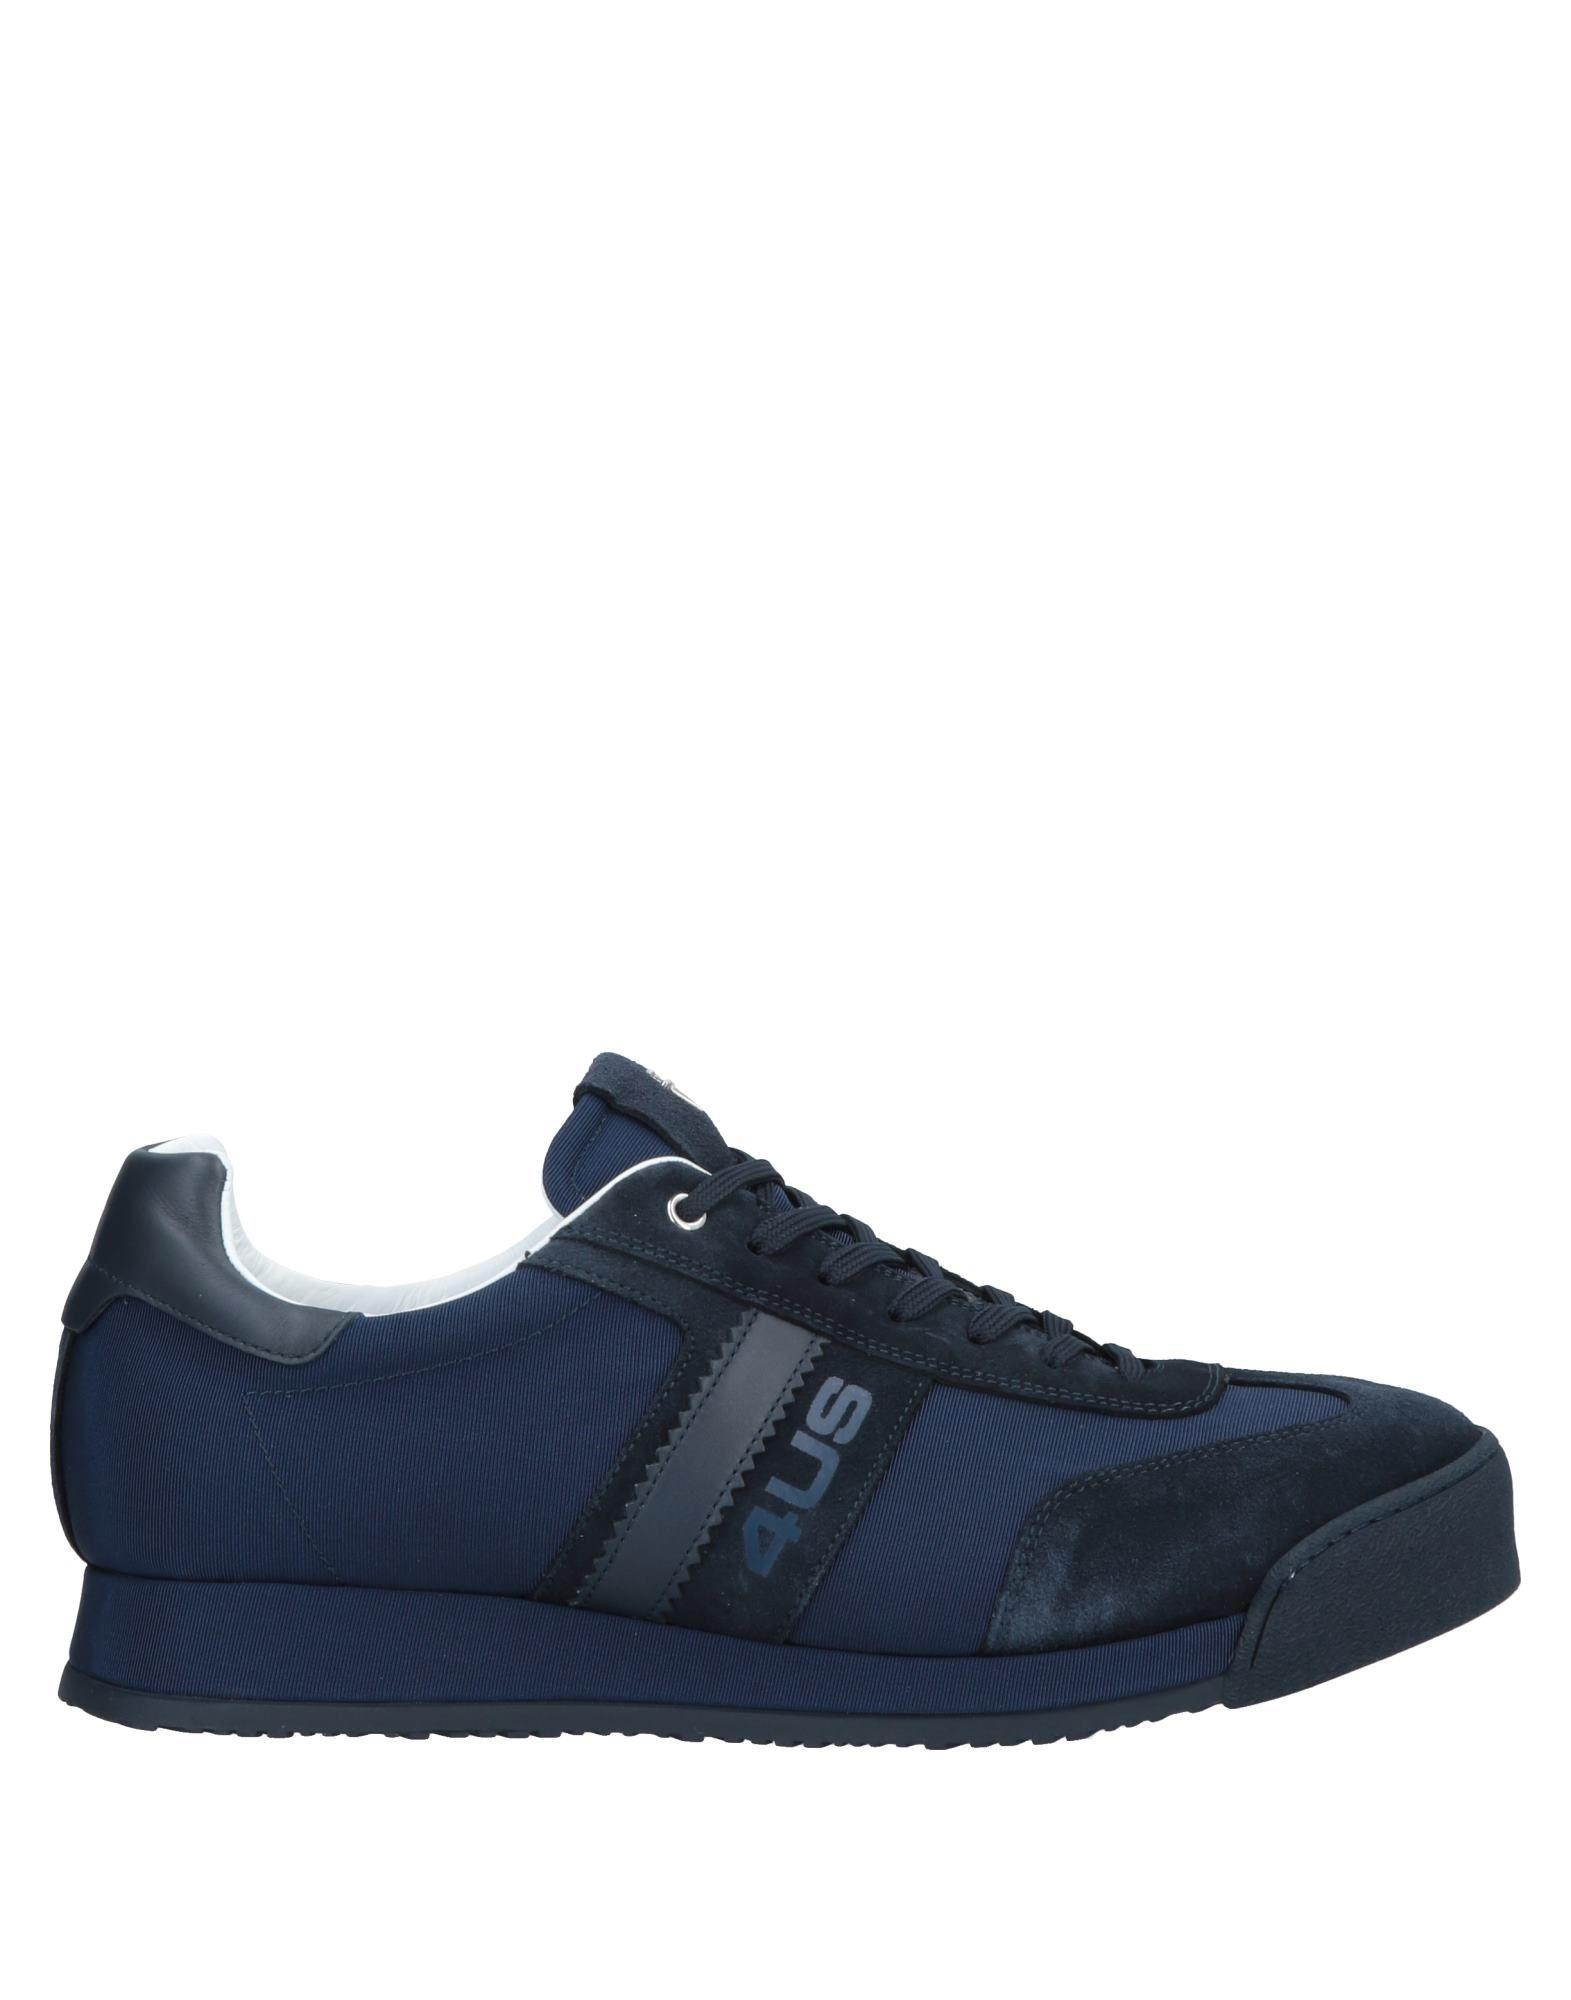 05beb4ca4d7 Lyst - Cesare Paciotti Low-tops   Sneakers in Blue for Men